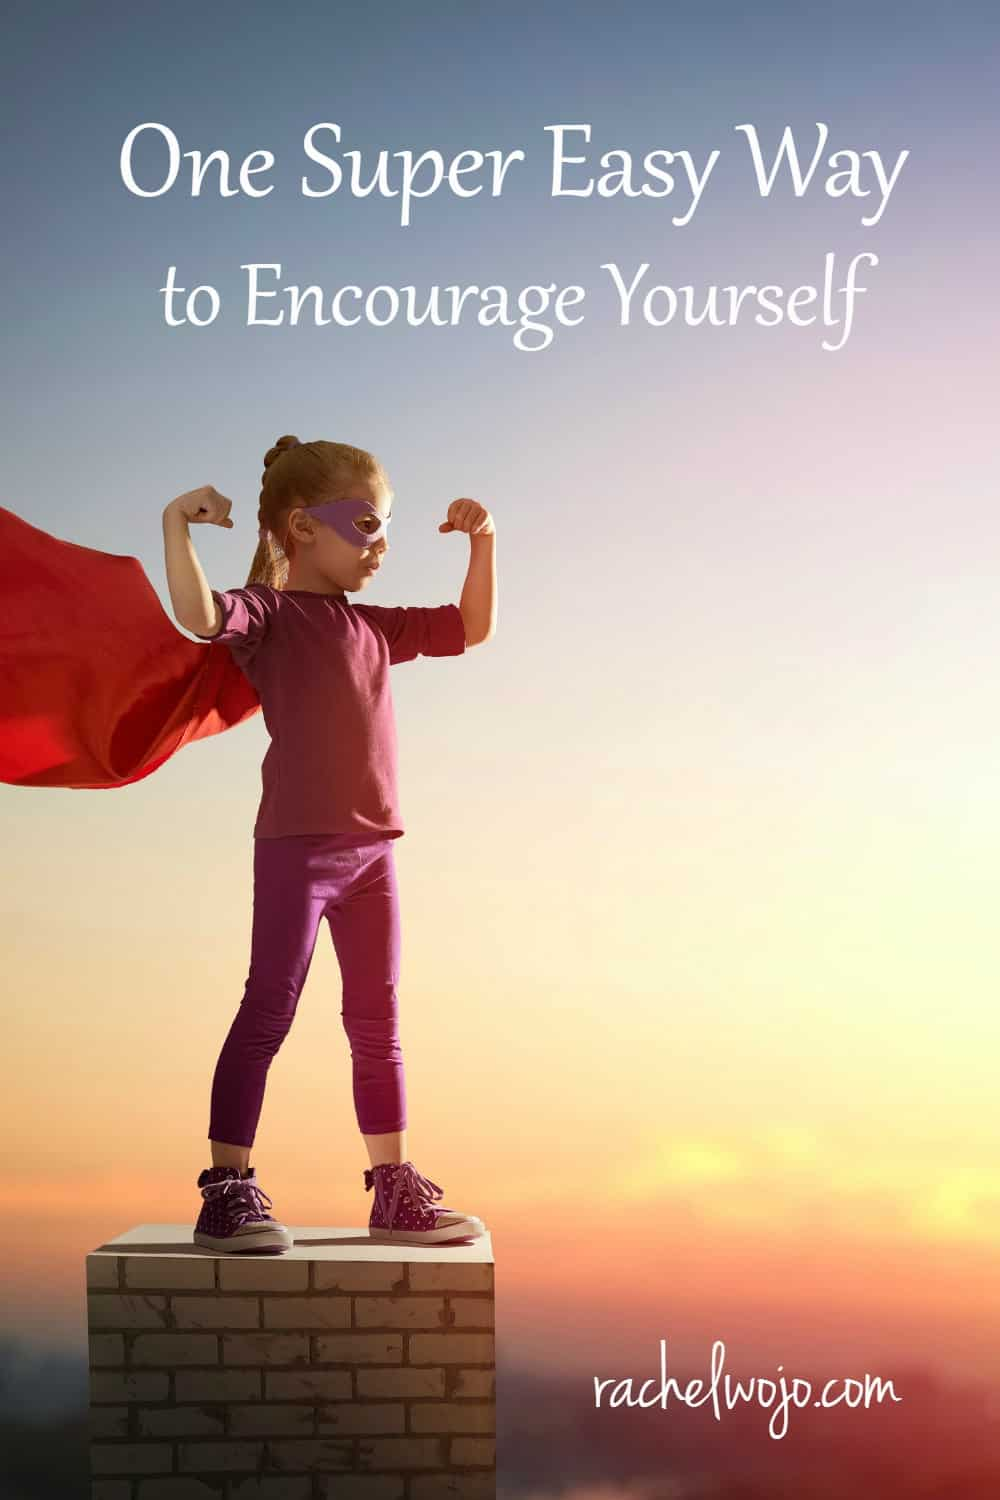 One Super Easy Way to Encourage Yourself